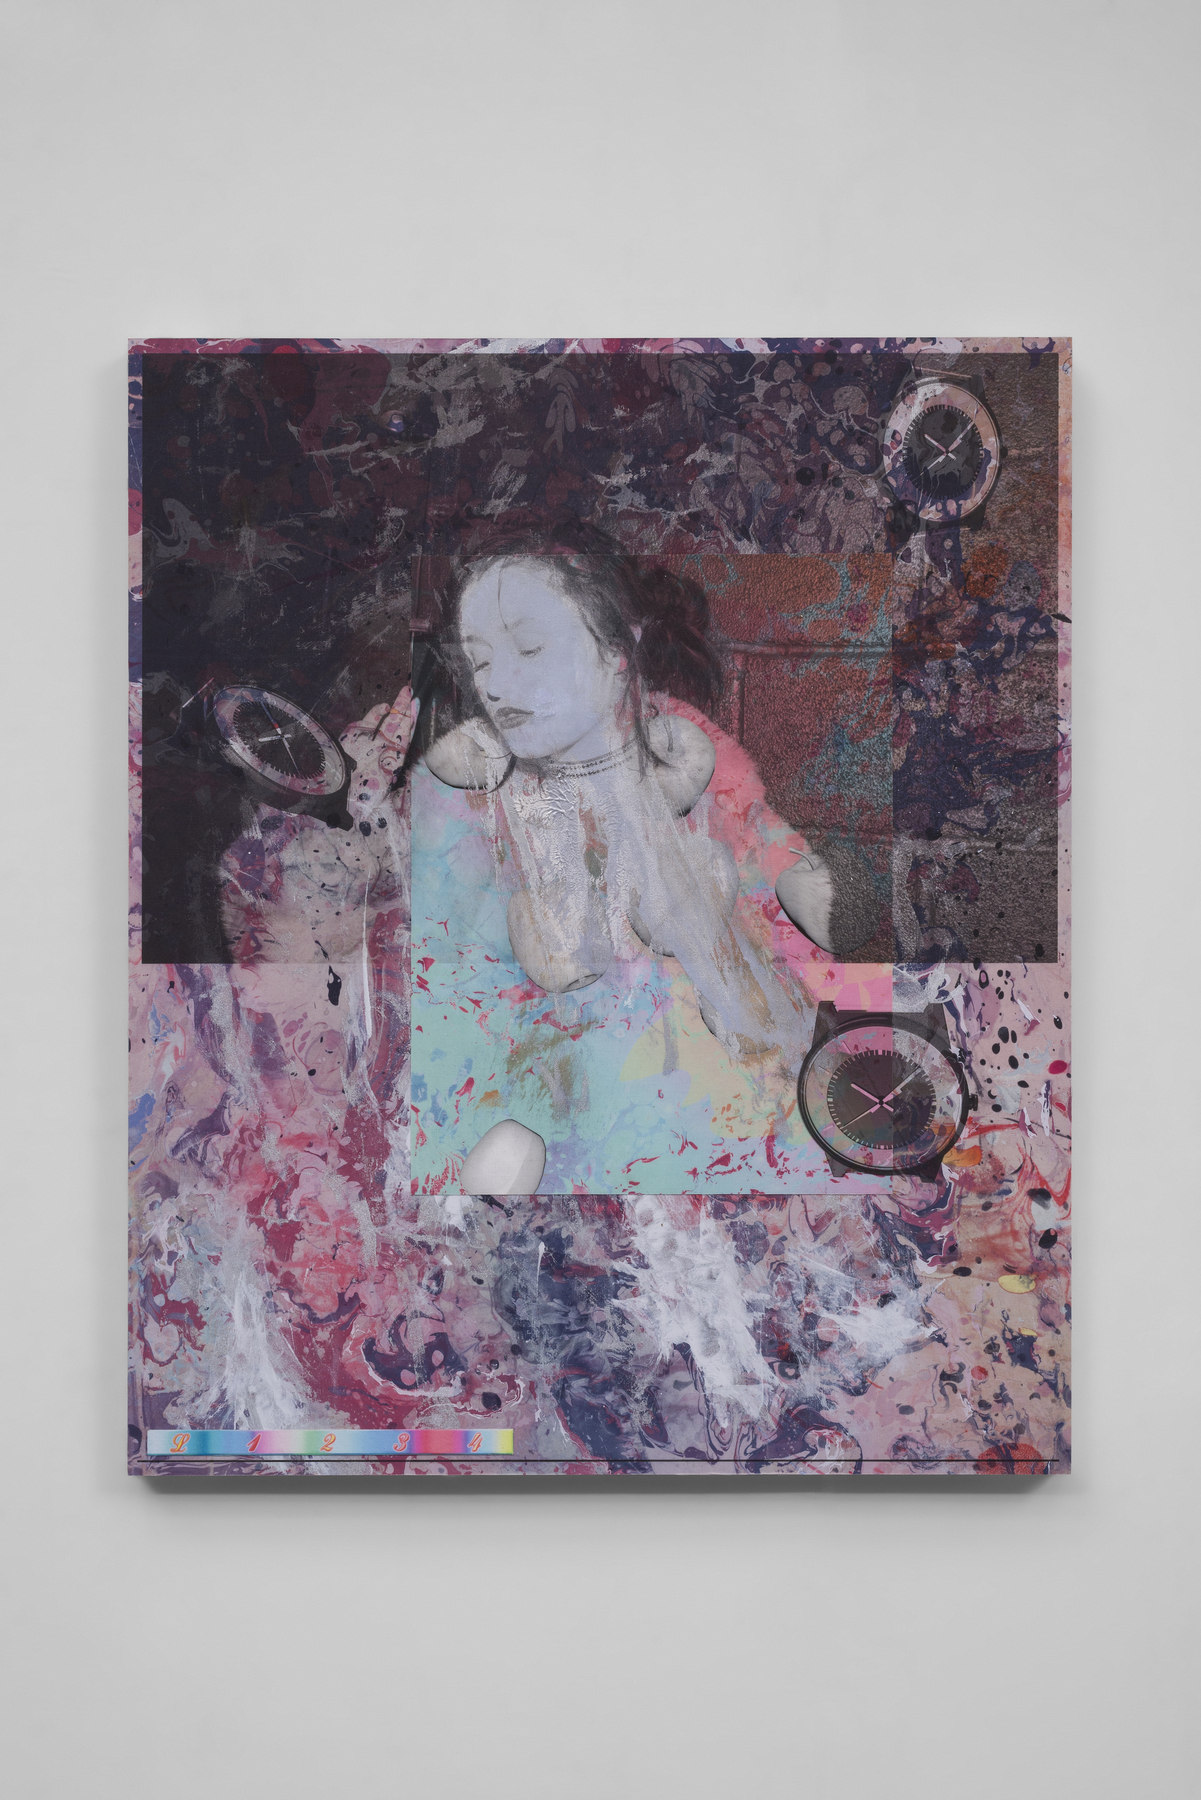 20. Mull_Theoretical Children (Luna Miu), 2015_K3 ink, ultra-violet ink and acrylic on cotton mounted on honeycomb aluminum_26x21 in